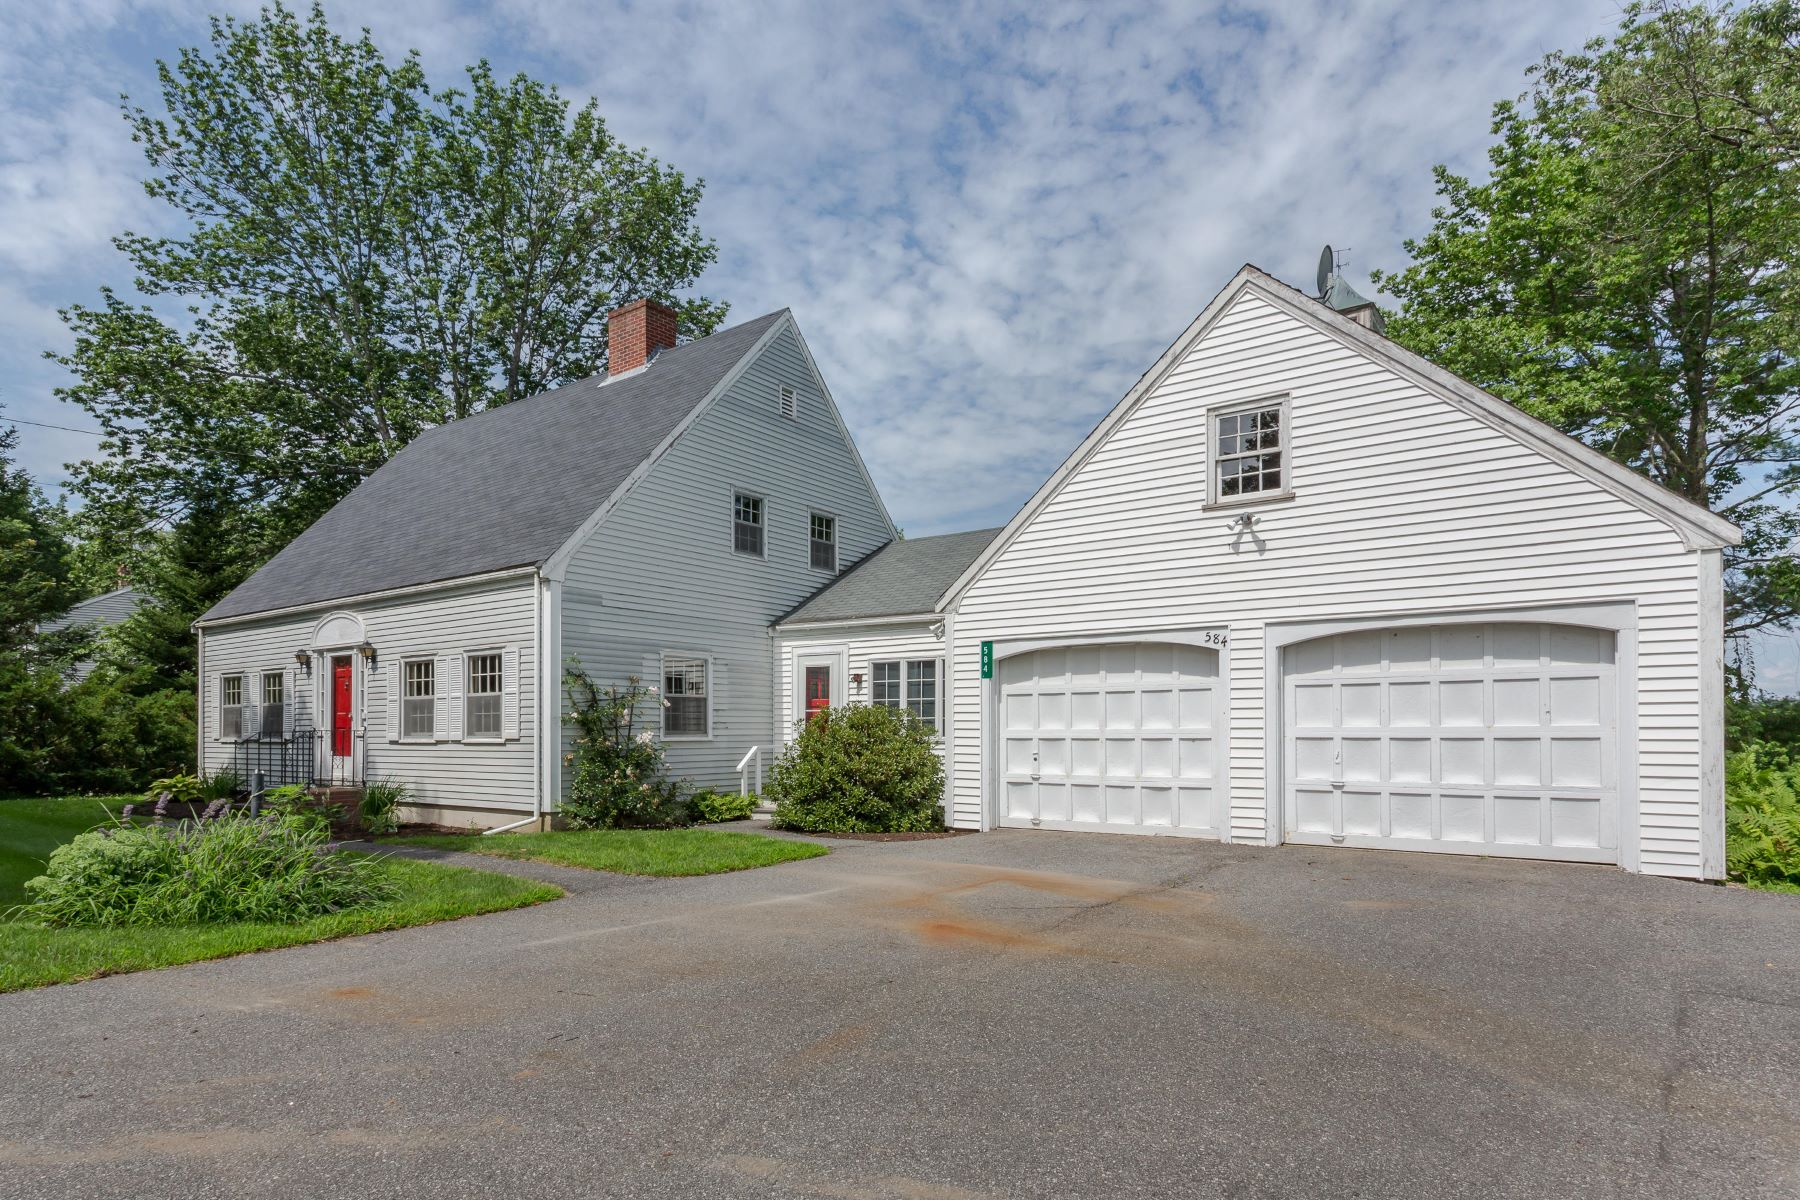 Single Family Homes for Sale at Damariscotta, Maine 04543 United States